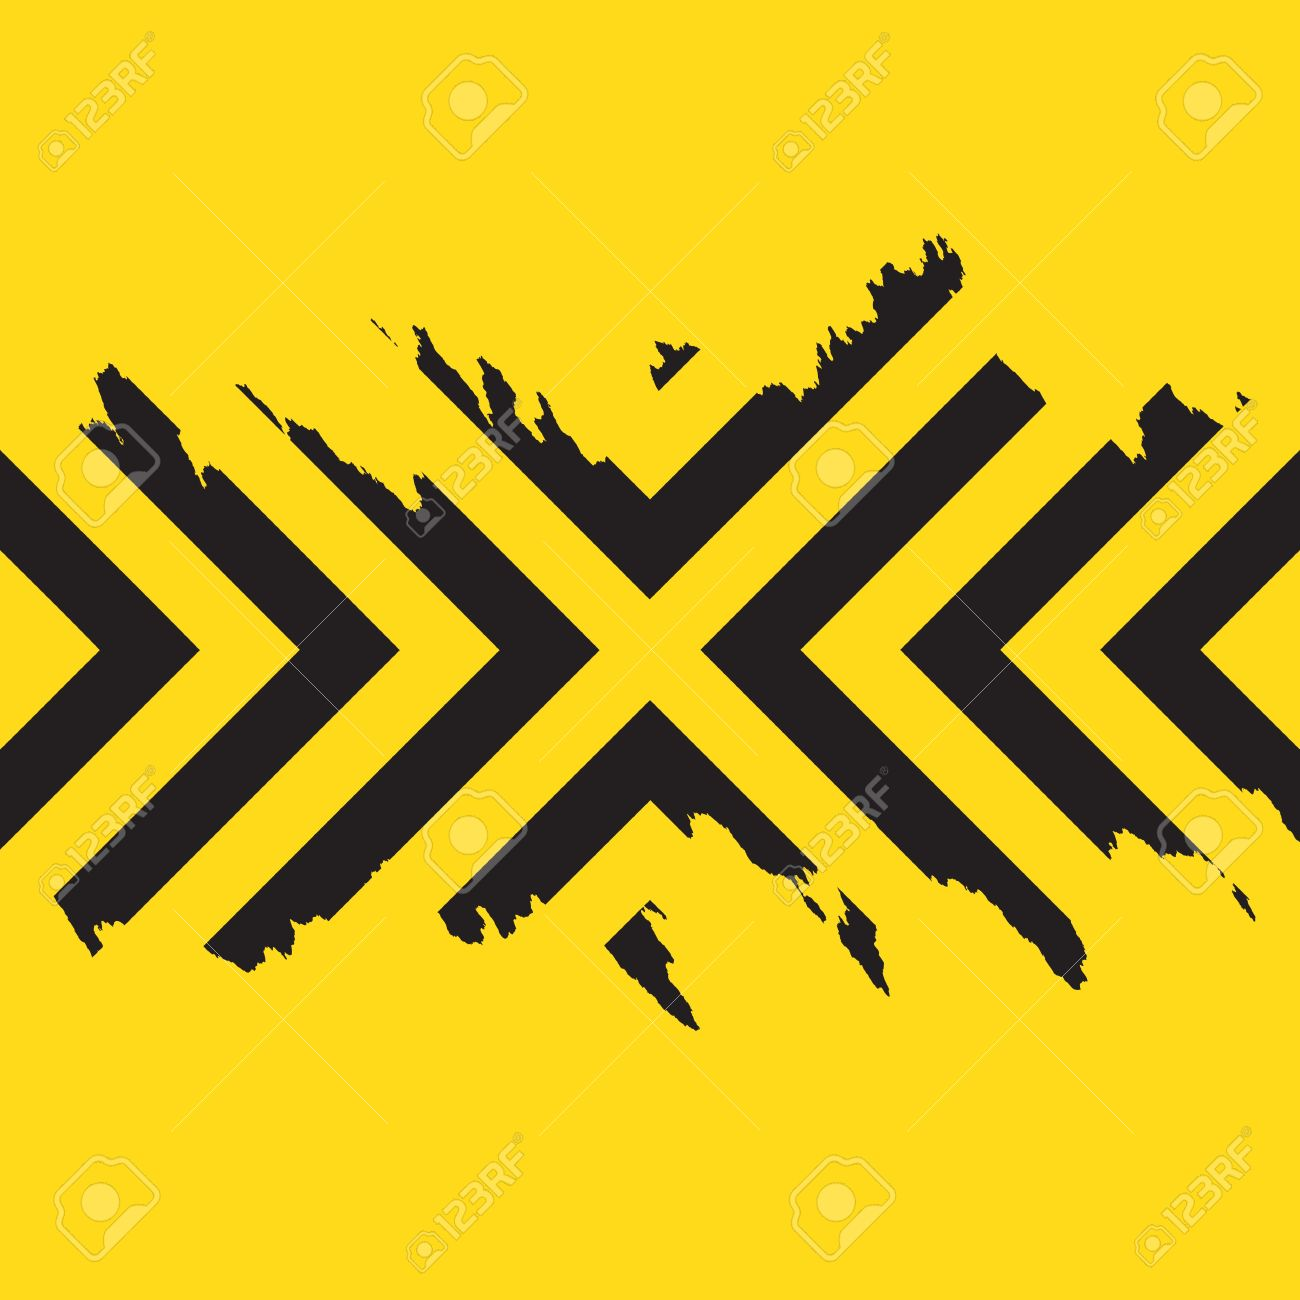 Border frame with black and yellow stripe on white background - Border Frame With Black And Yellow Stripe On White Background Chevron Border Worn Black Chevron Download